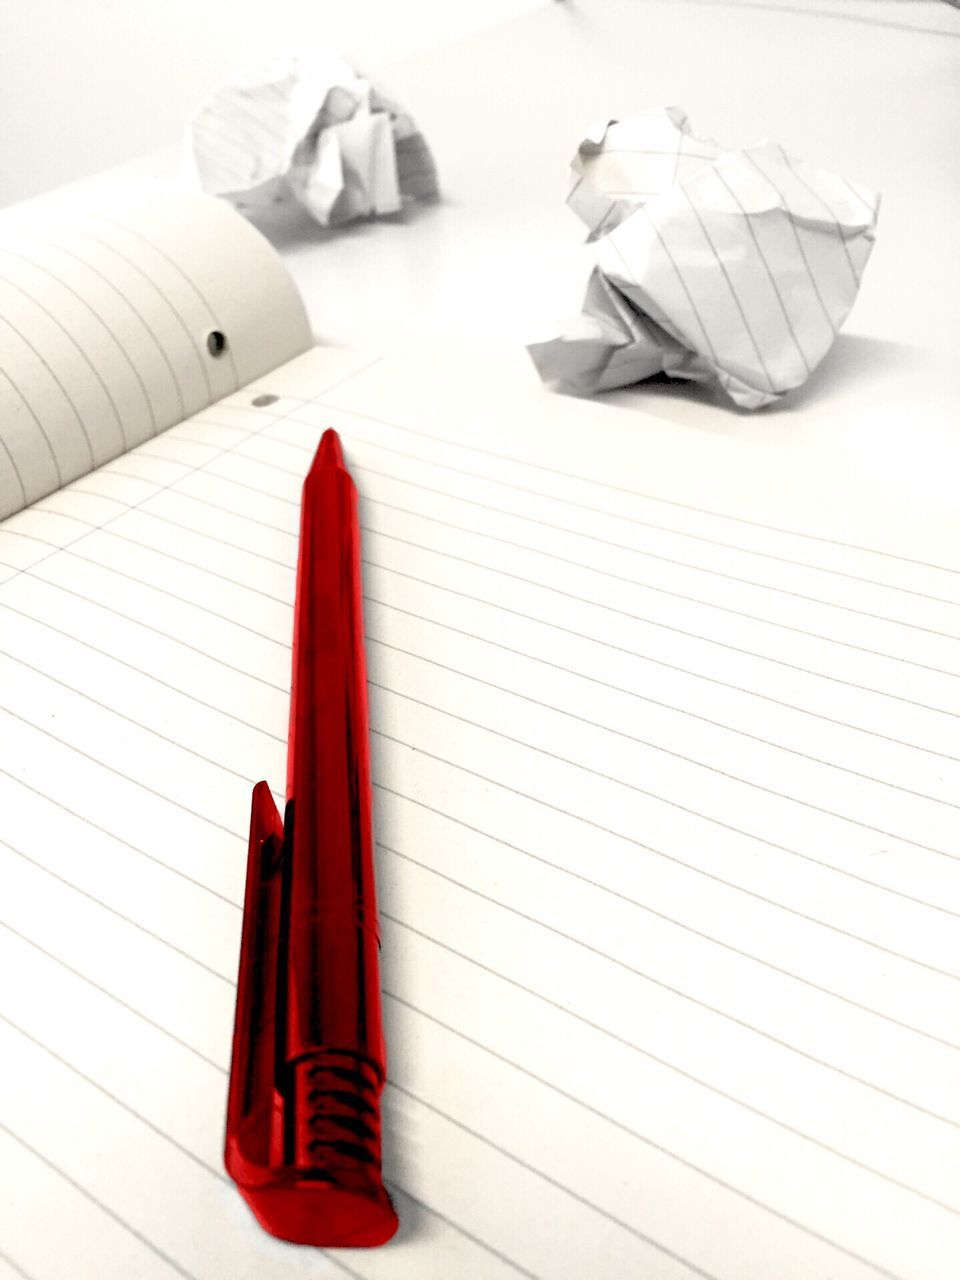 Close-Up Of Red Pen Over Book By Crumpled Pages On Table